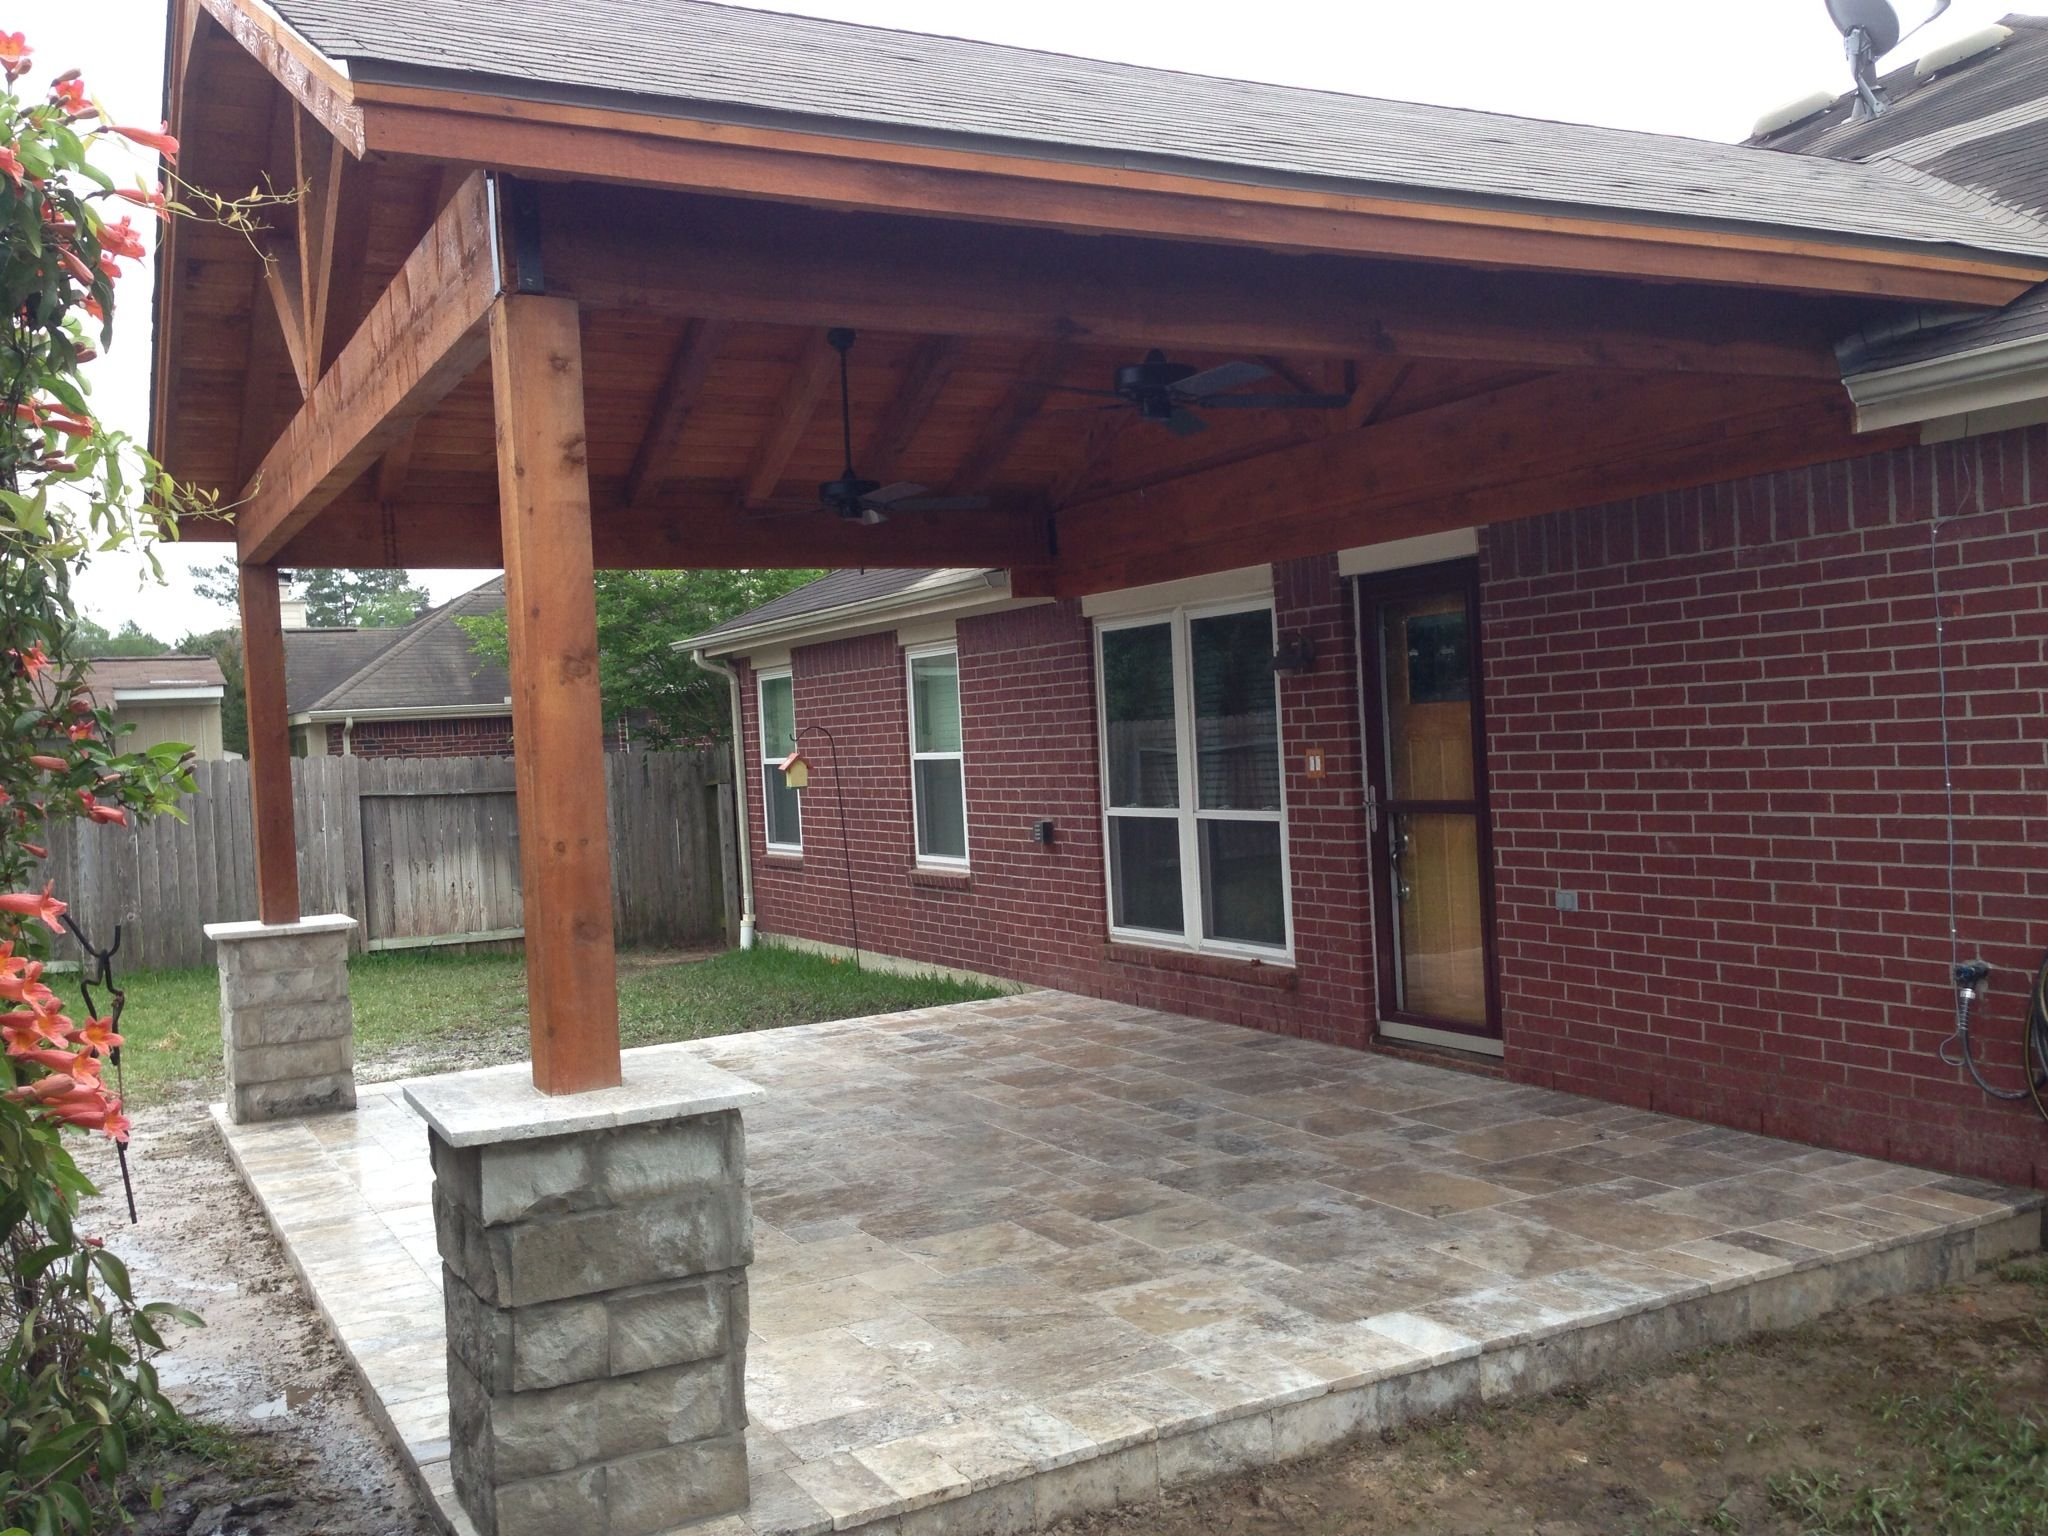 Gabled Cedar Patio Cover With Travertine Paver Patio And Chopped